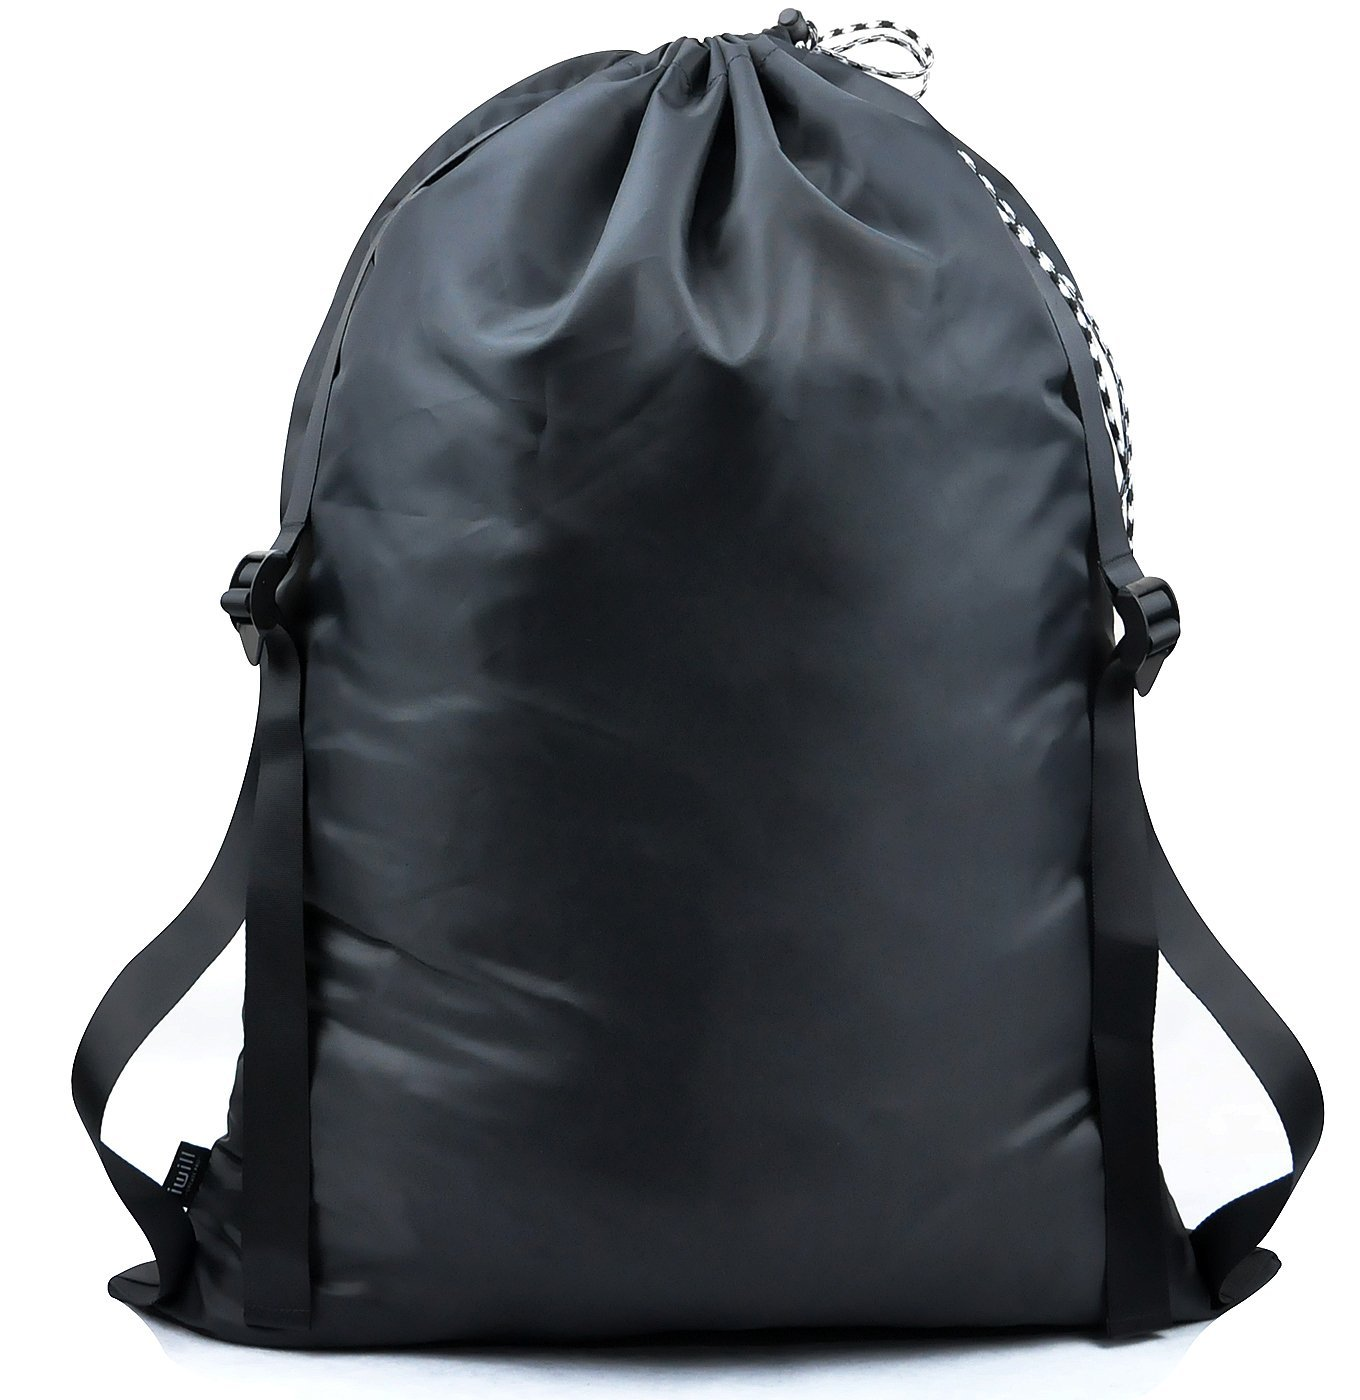 """『25""""X31""""』 Carry Handy Laundry Bag with 2 Strong Adjustable Shoulder Straps for Laundromat, Just Right Size & Heavy Duty,Free Your Hands with Backpack Laundry Bag, Black"""